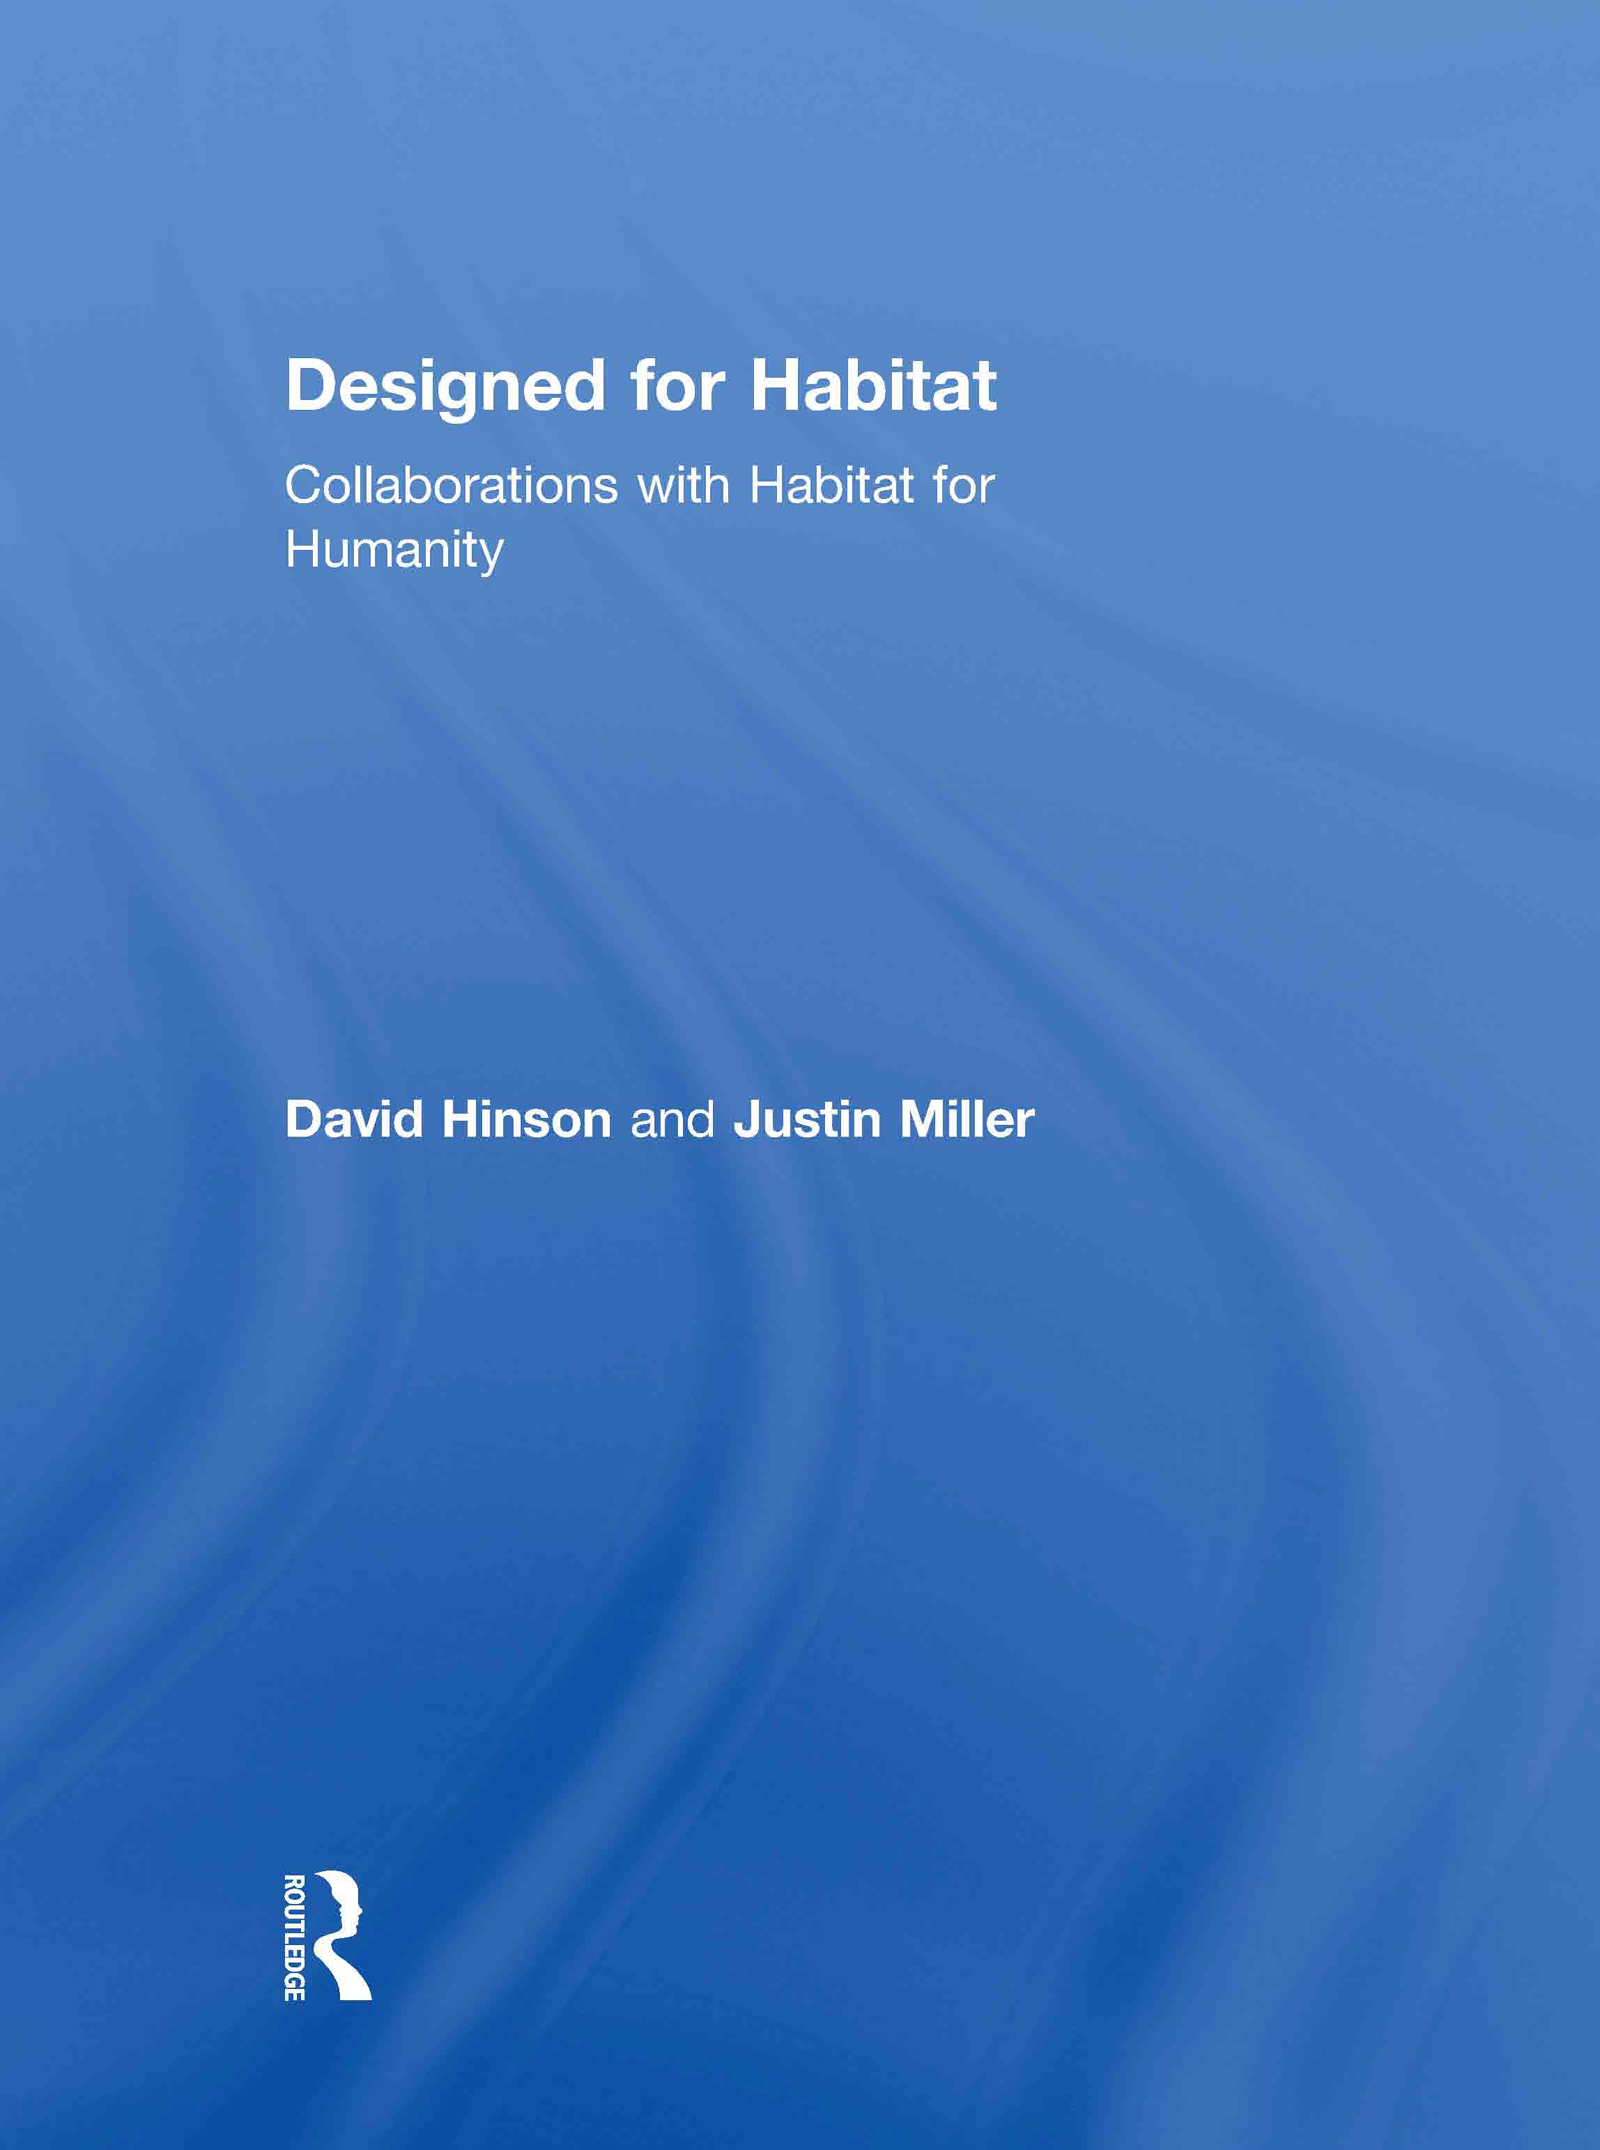 Designed for Habitat: Collaborations with Habitat for Humanity book cover